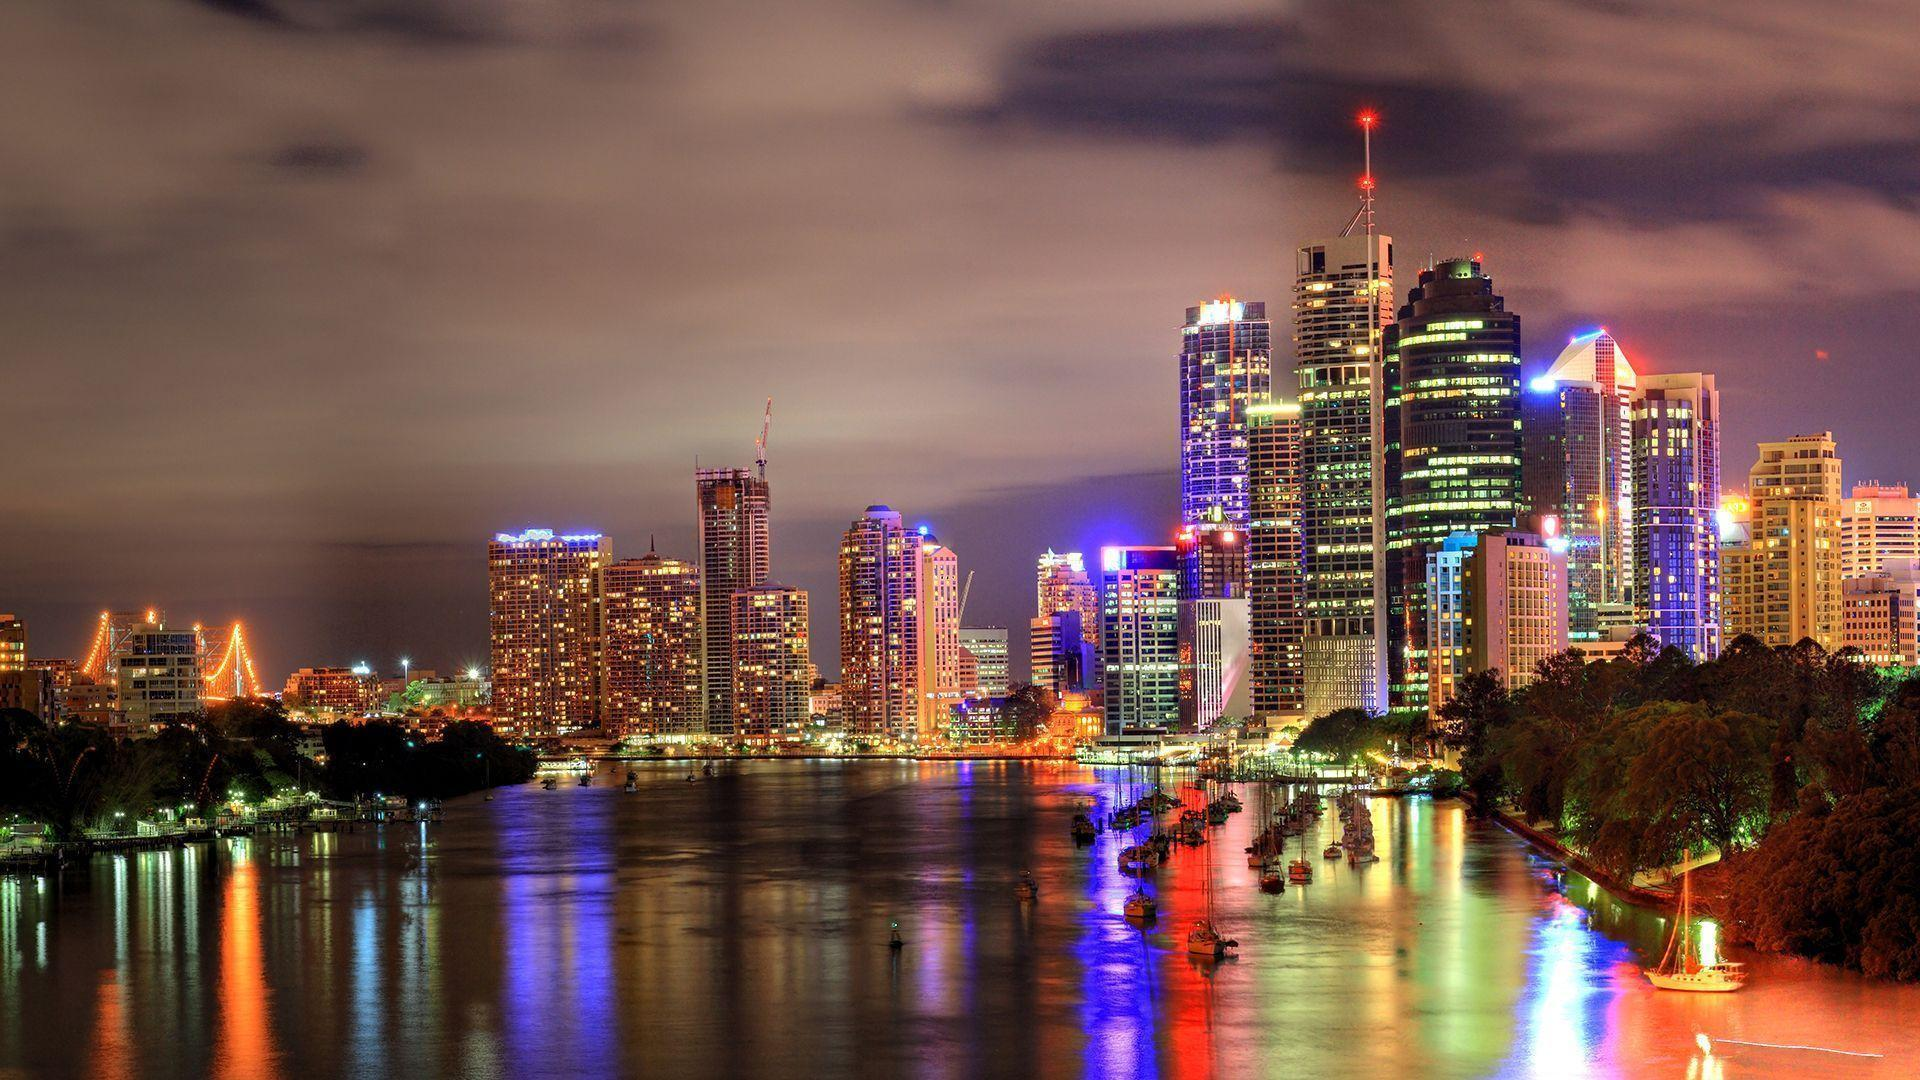 Brisbane HD Wallpaper Free - Download Brisbane HD Wallpaper